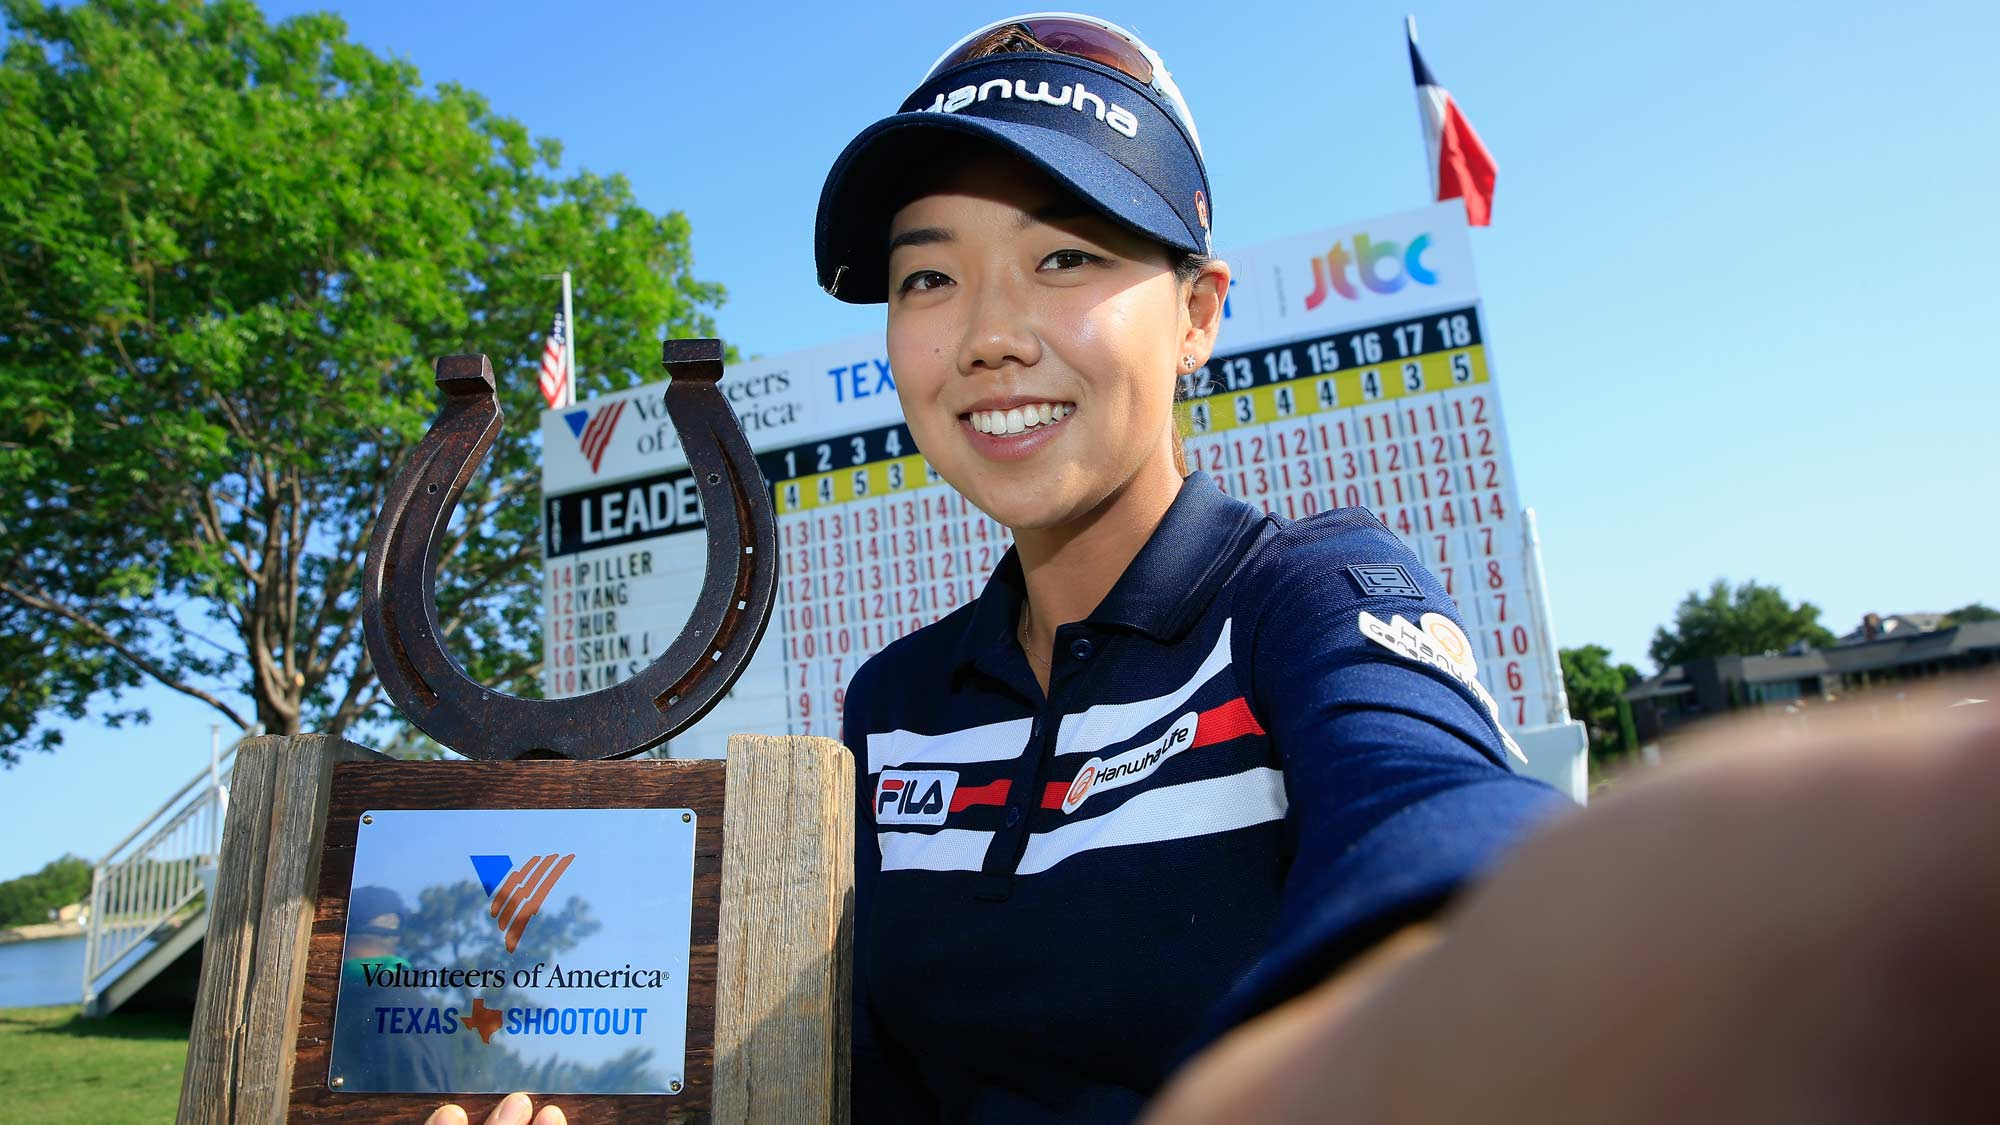 Jenny Shin with VOA Texas Shootout trophy